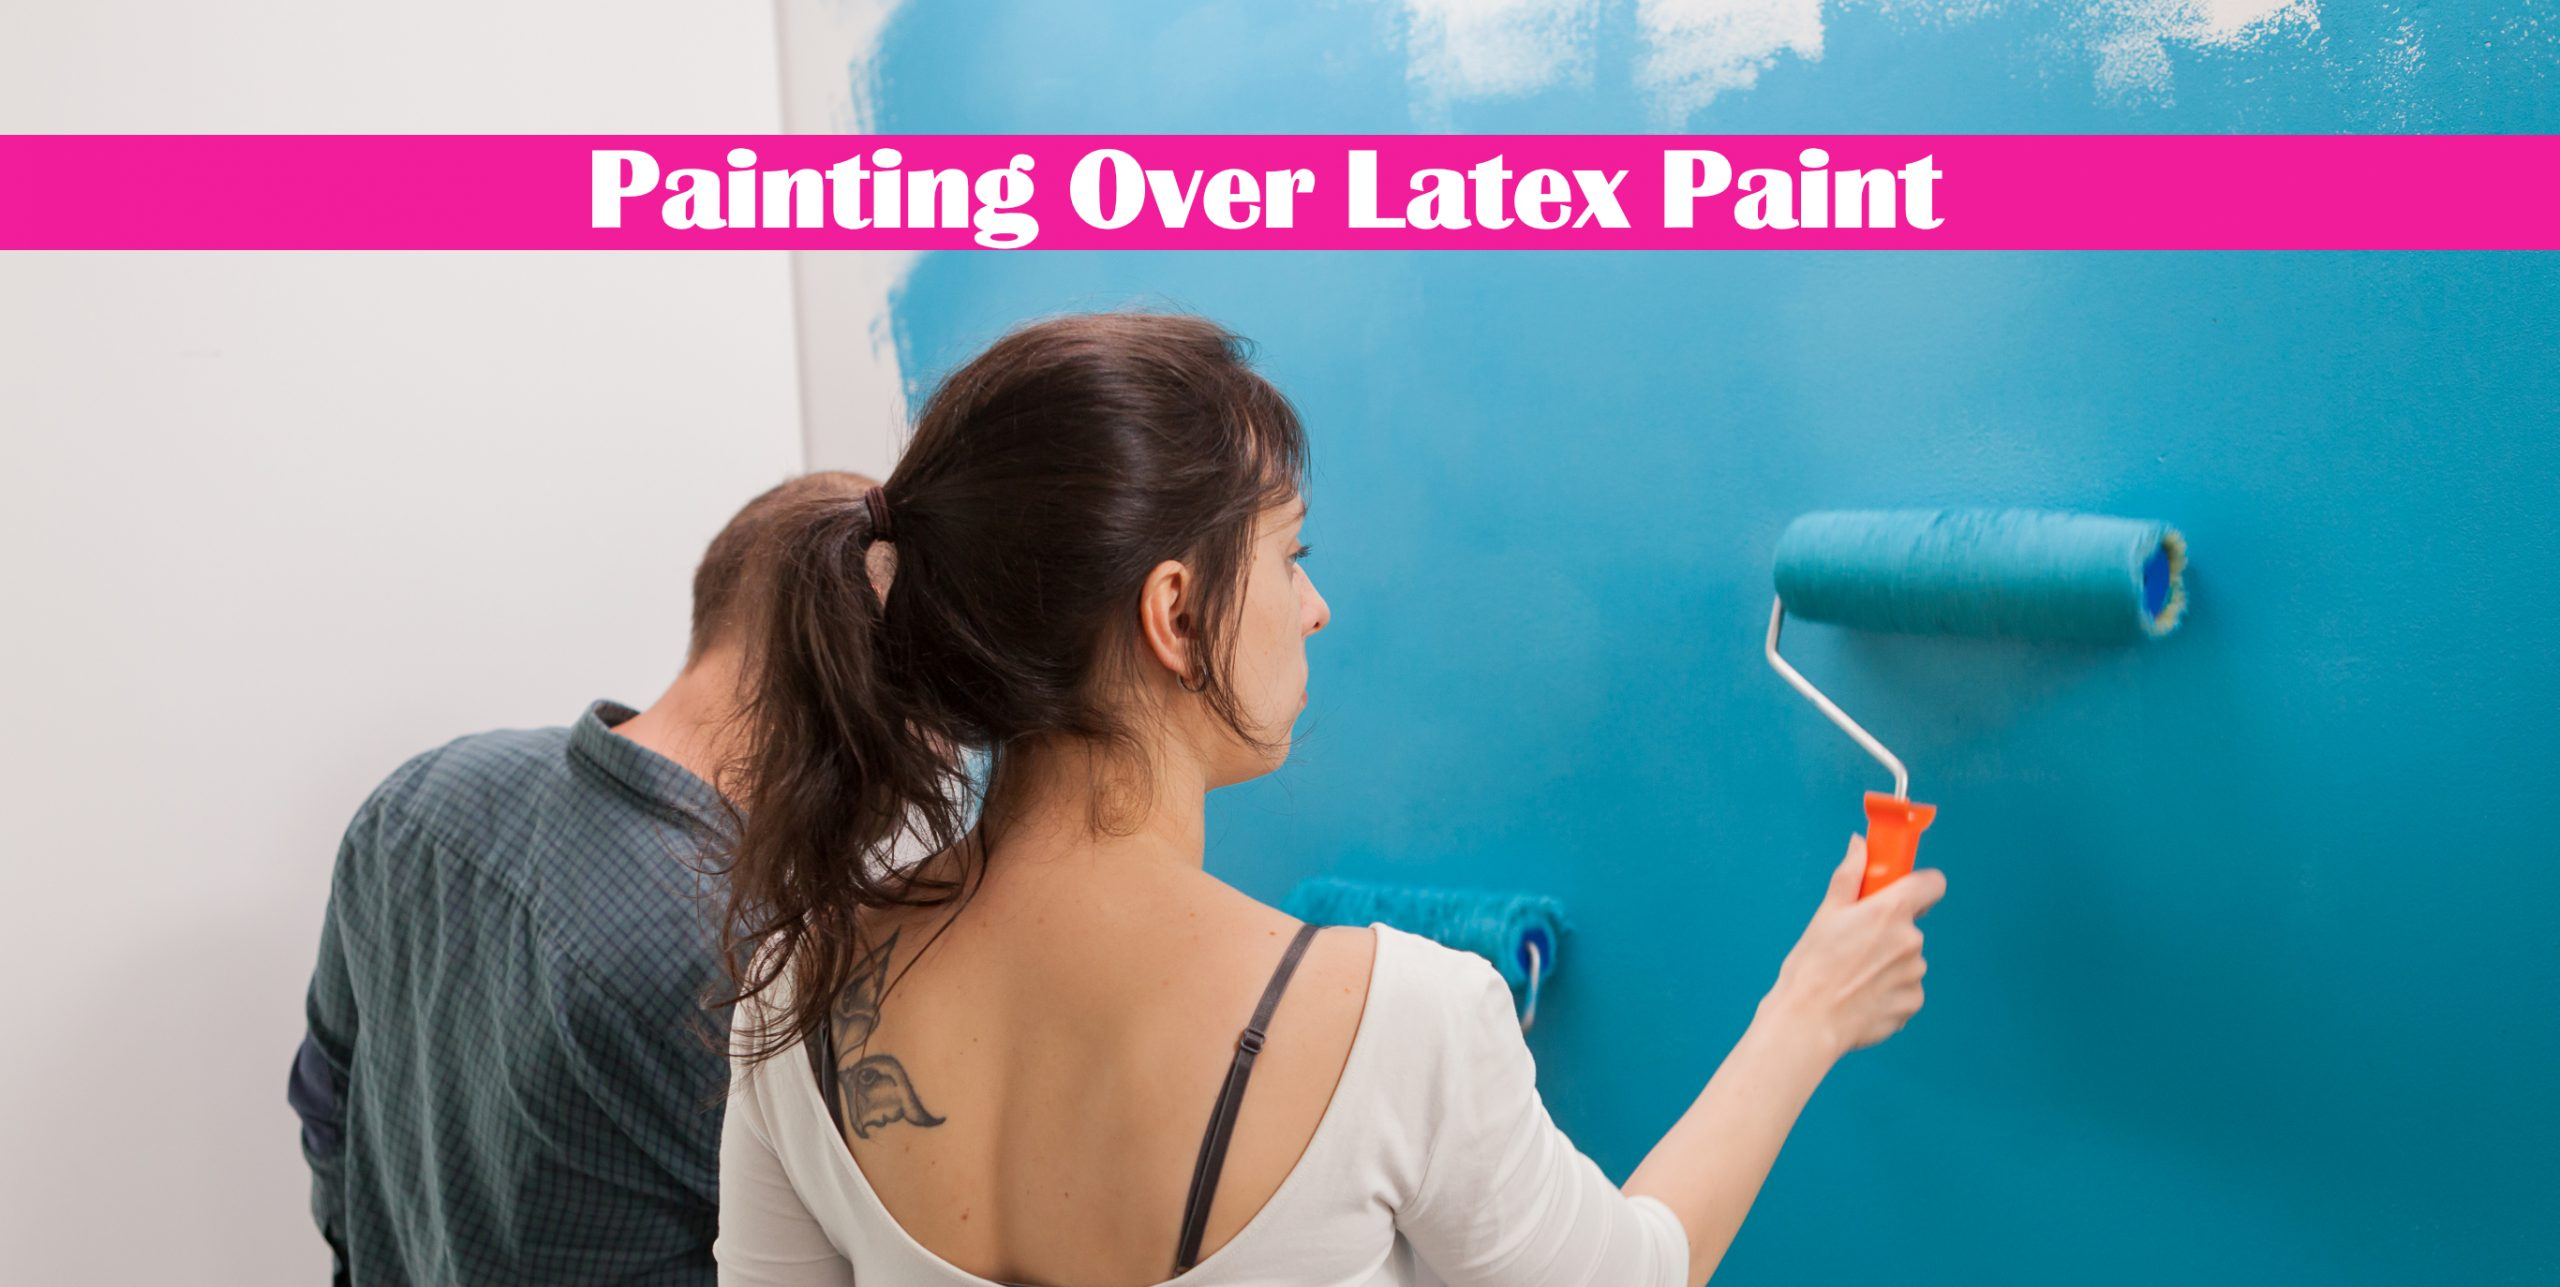 Painting Over Latex Paint: What Paint to Use and More